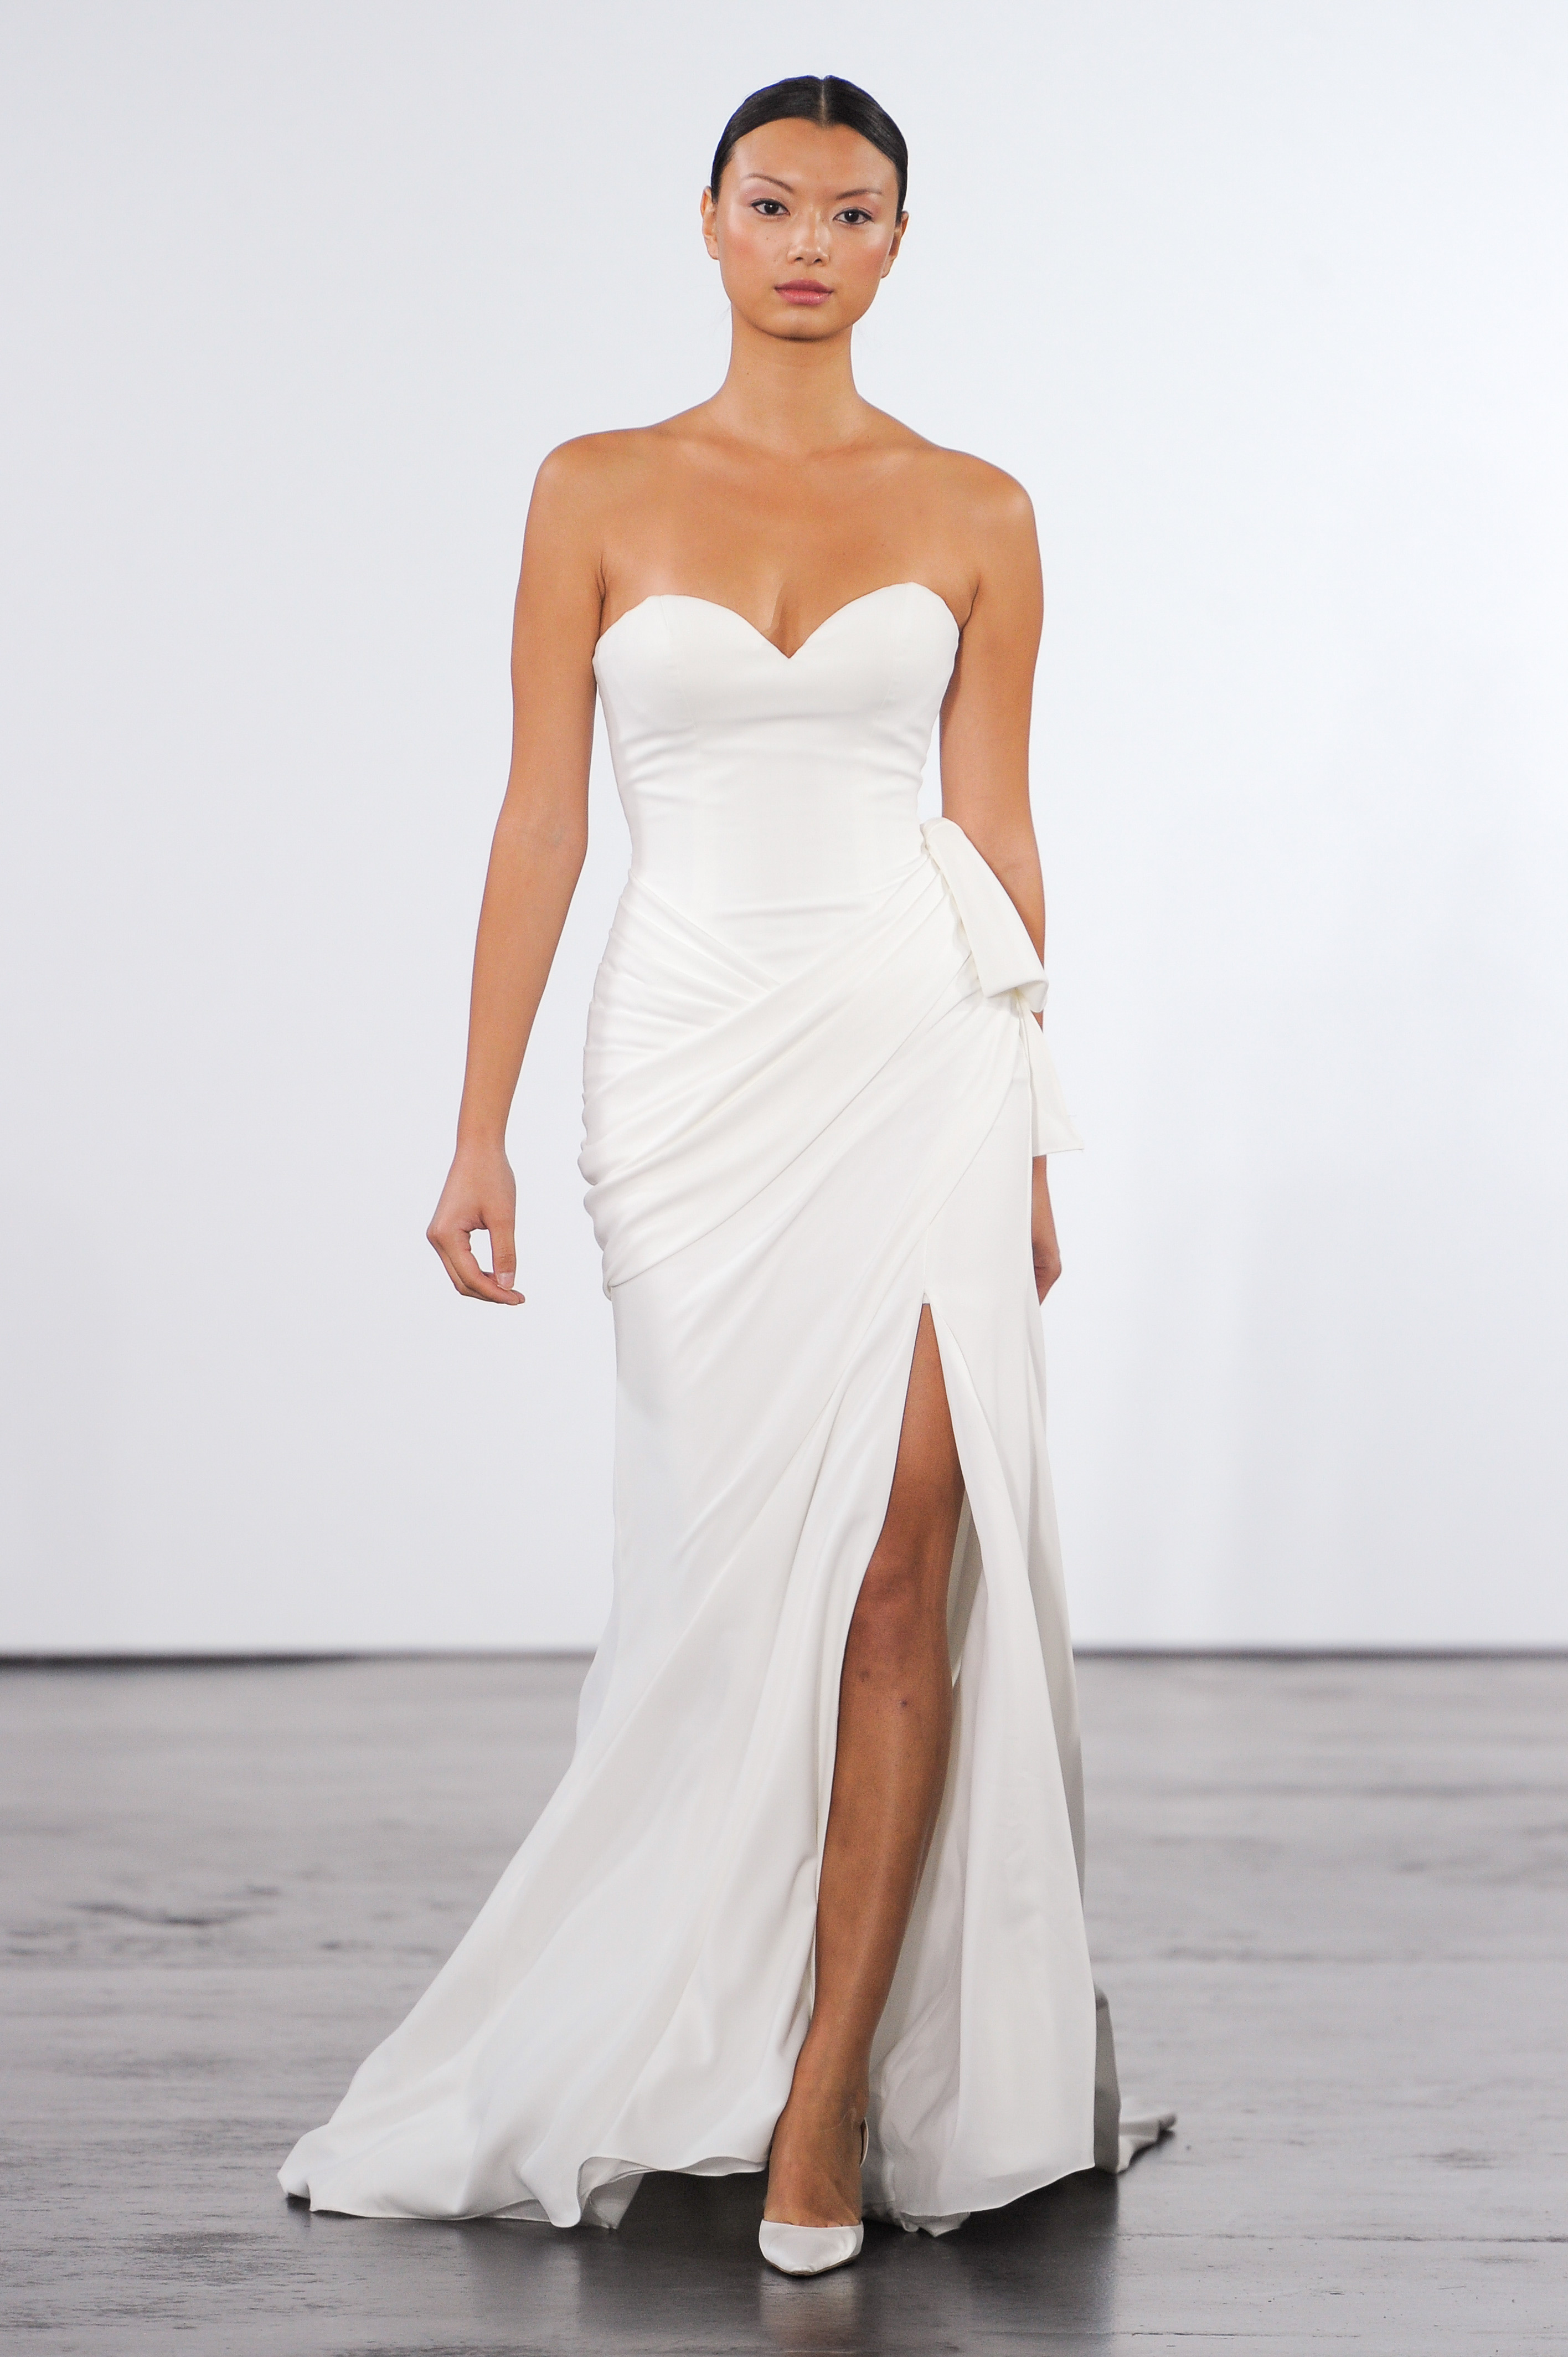 Top 10 Wedding Dress Designers In The Philippines Goldin Ma